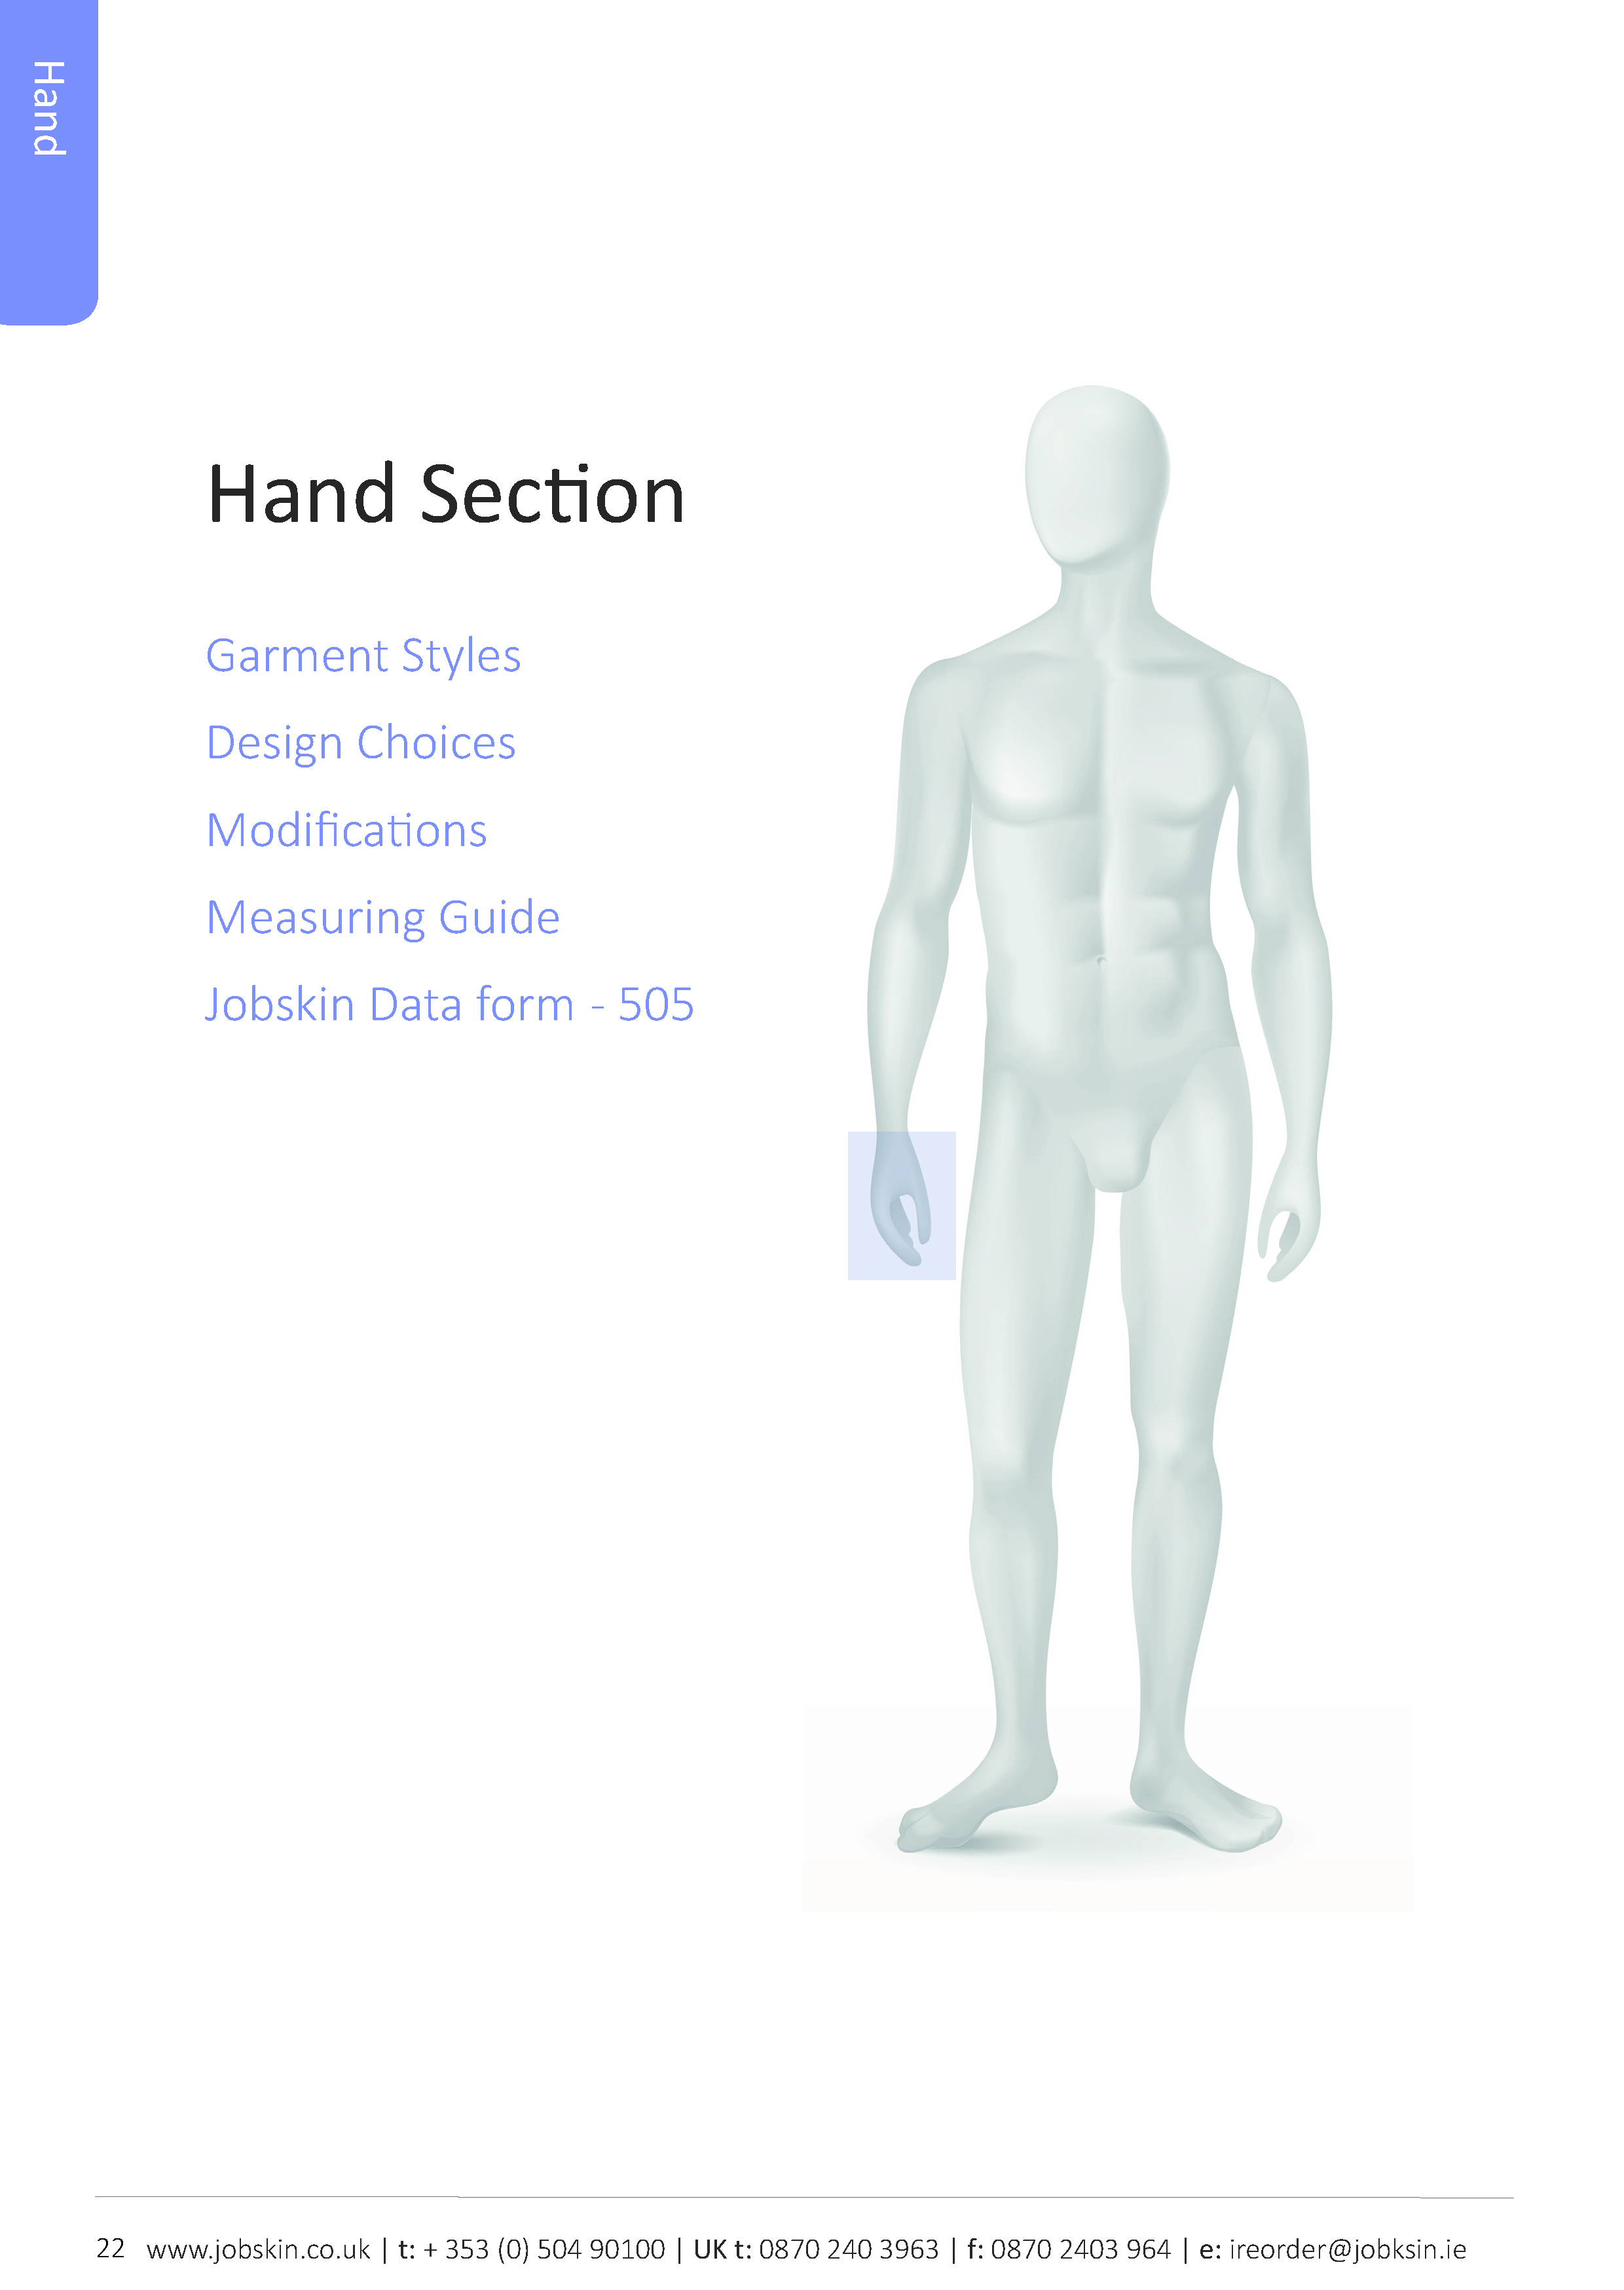 Hand how to measure section